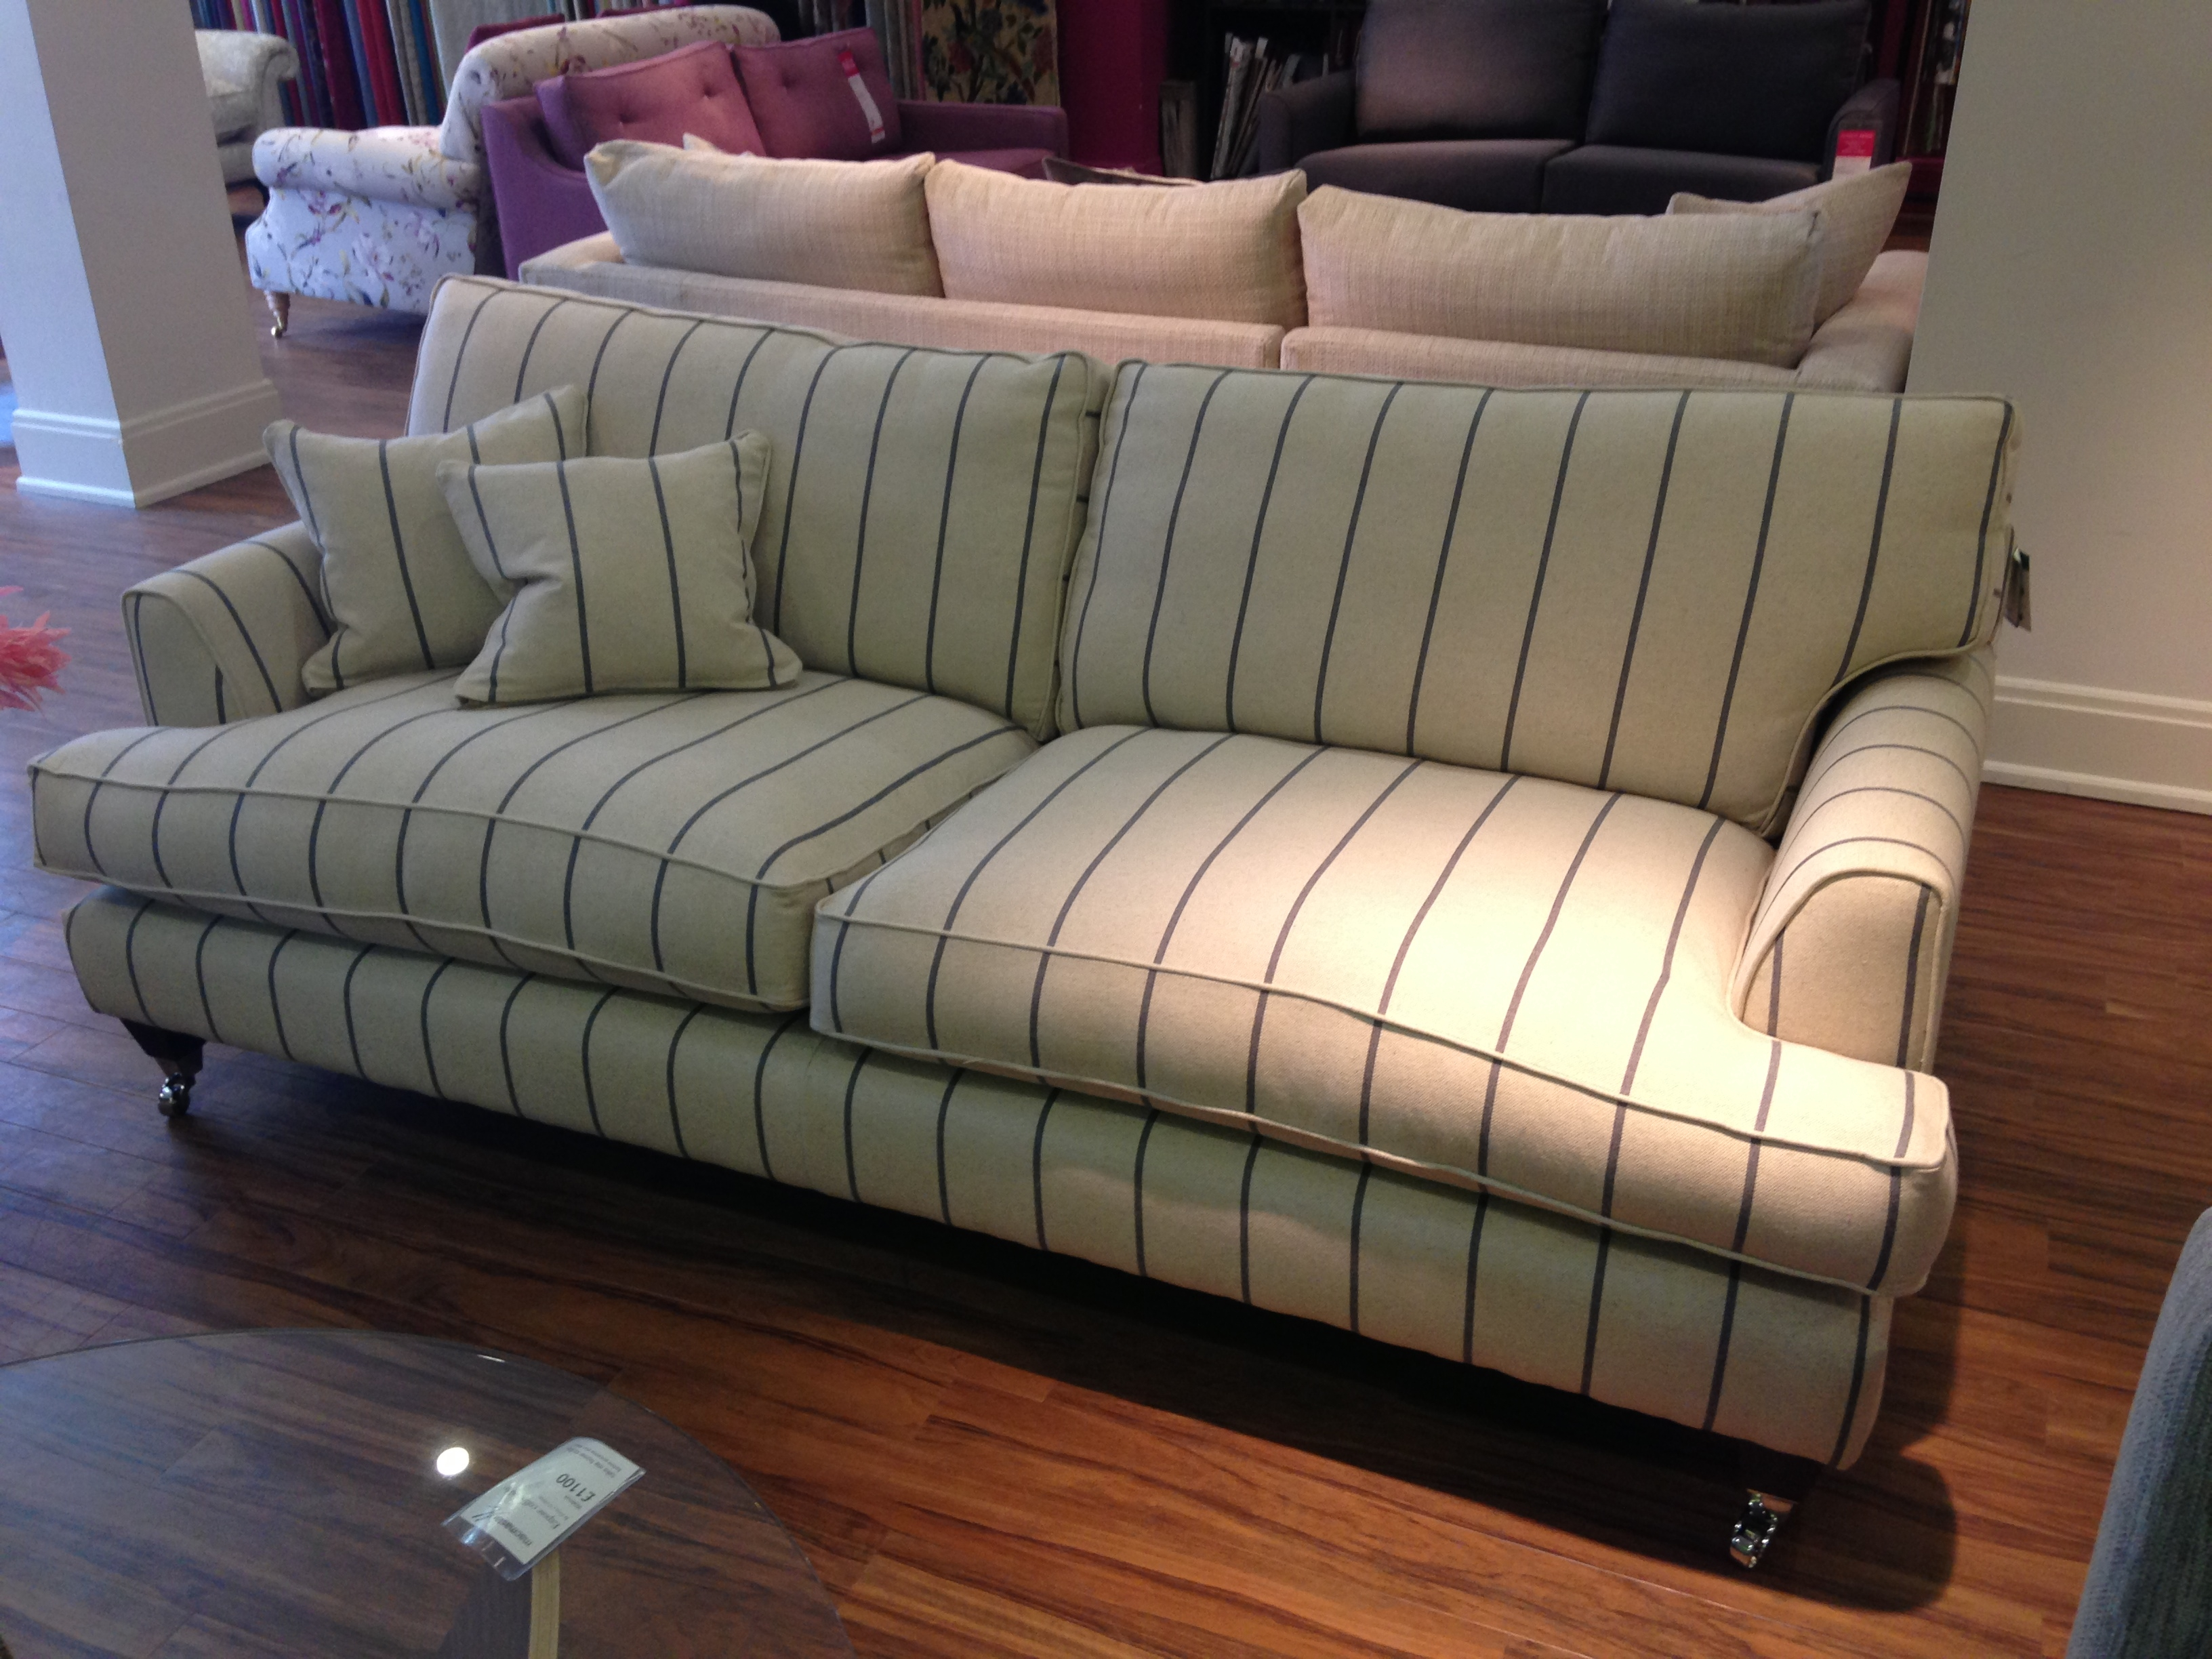 Florence Large Sofa In Heron Stripe Httpwwwsofaworkshop In Florence Grand Sofas (Image 11 of 15)